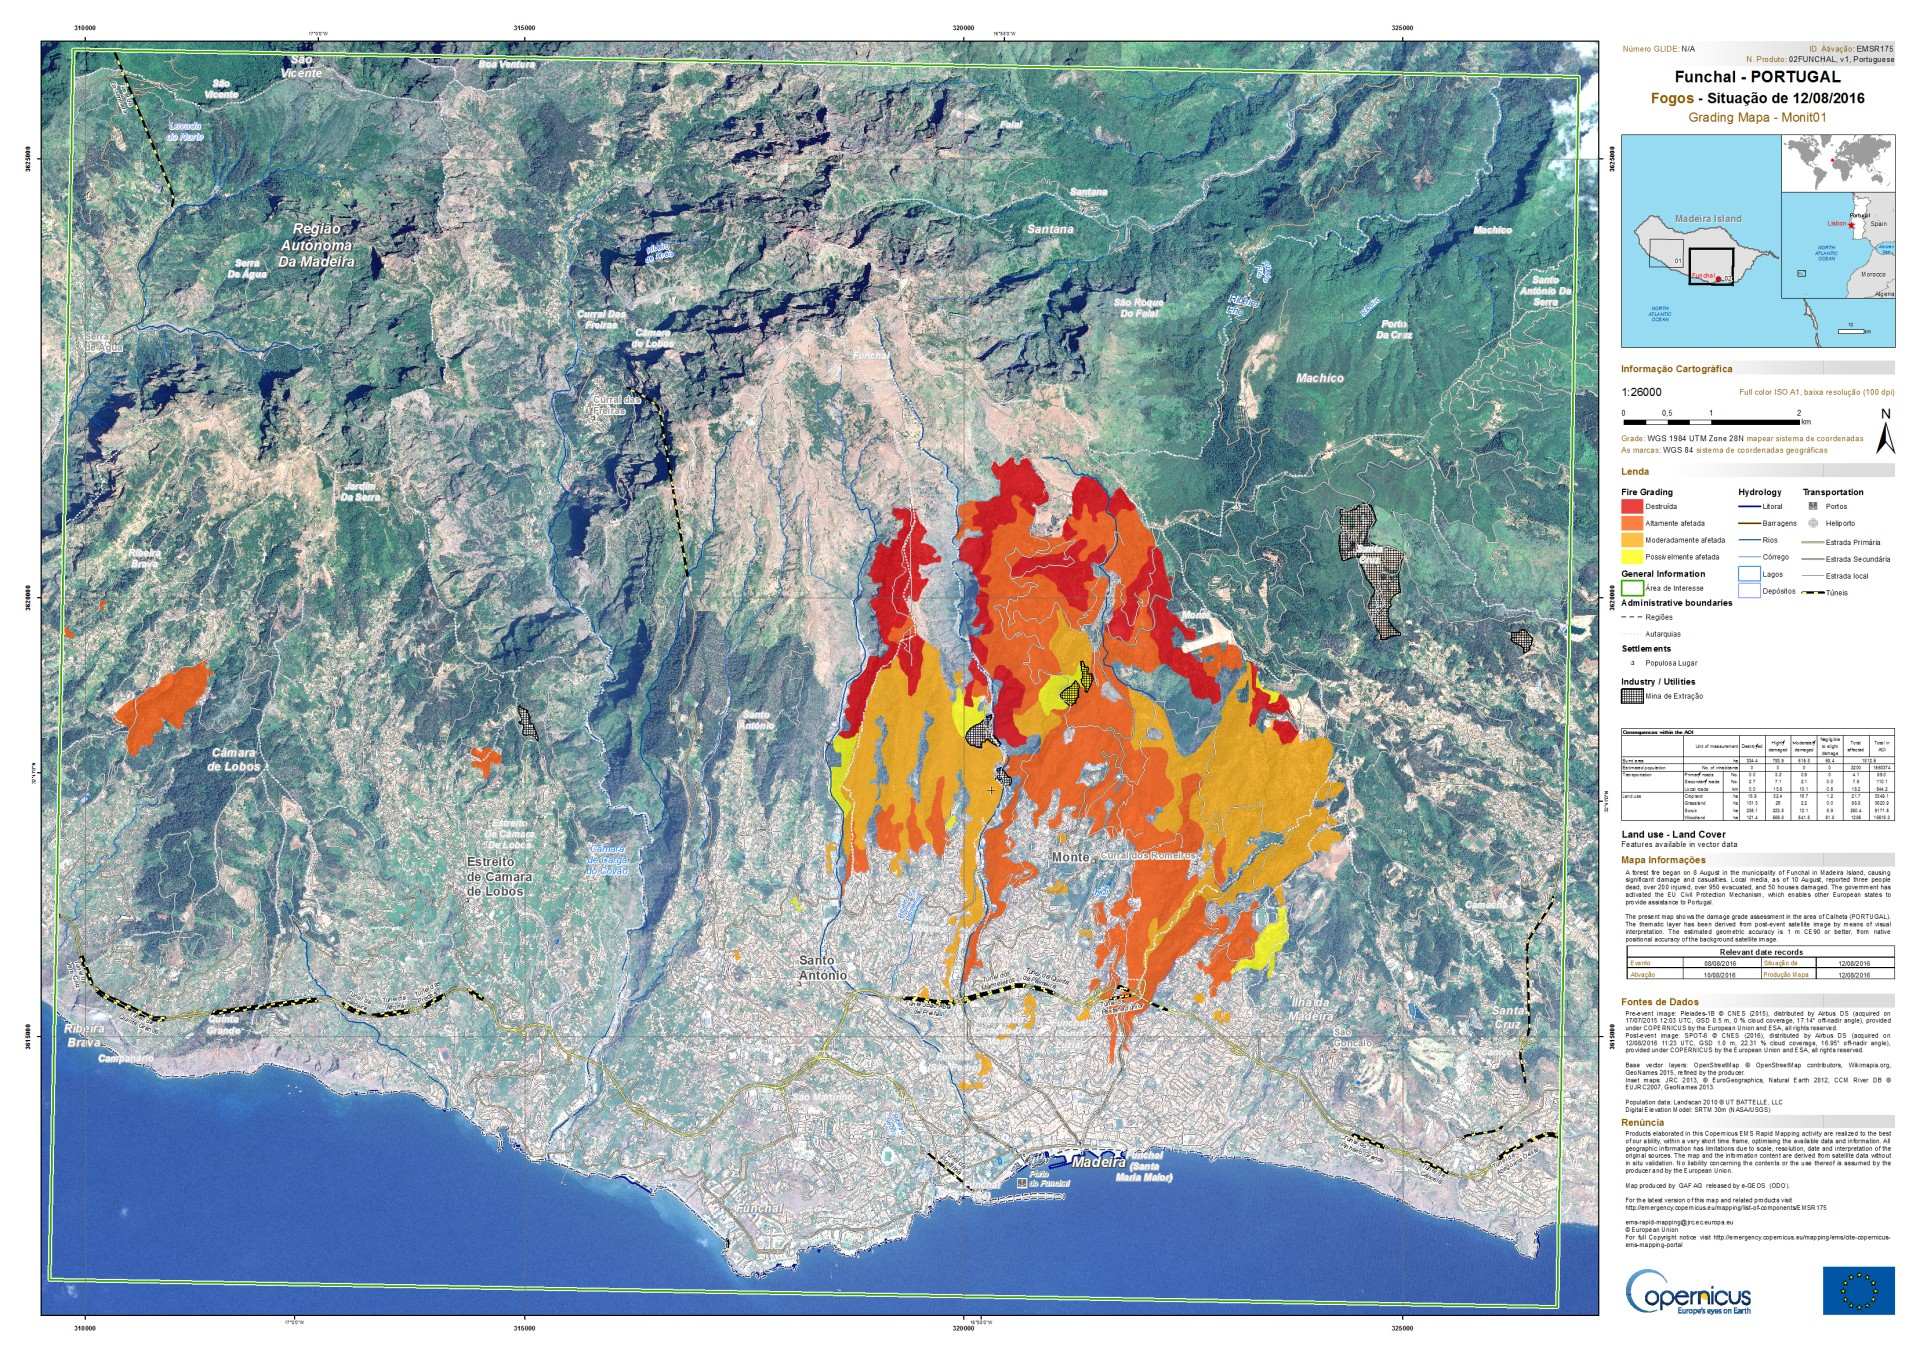 Copernicus - Emergency Mapping Service - EMS - Union Européenne - Grading map - cartographie rapide - Madeira - Madère - Funchal - Pléiades - SPOT 6 - GMES - Wild fires - activation - EU Civil protection